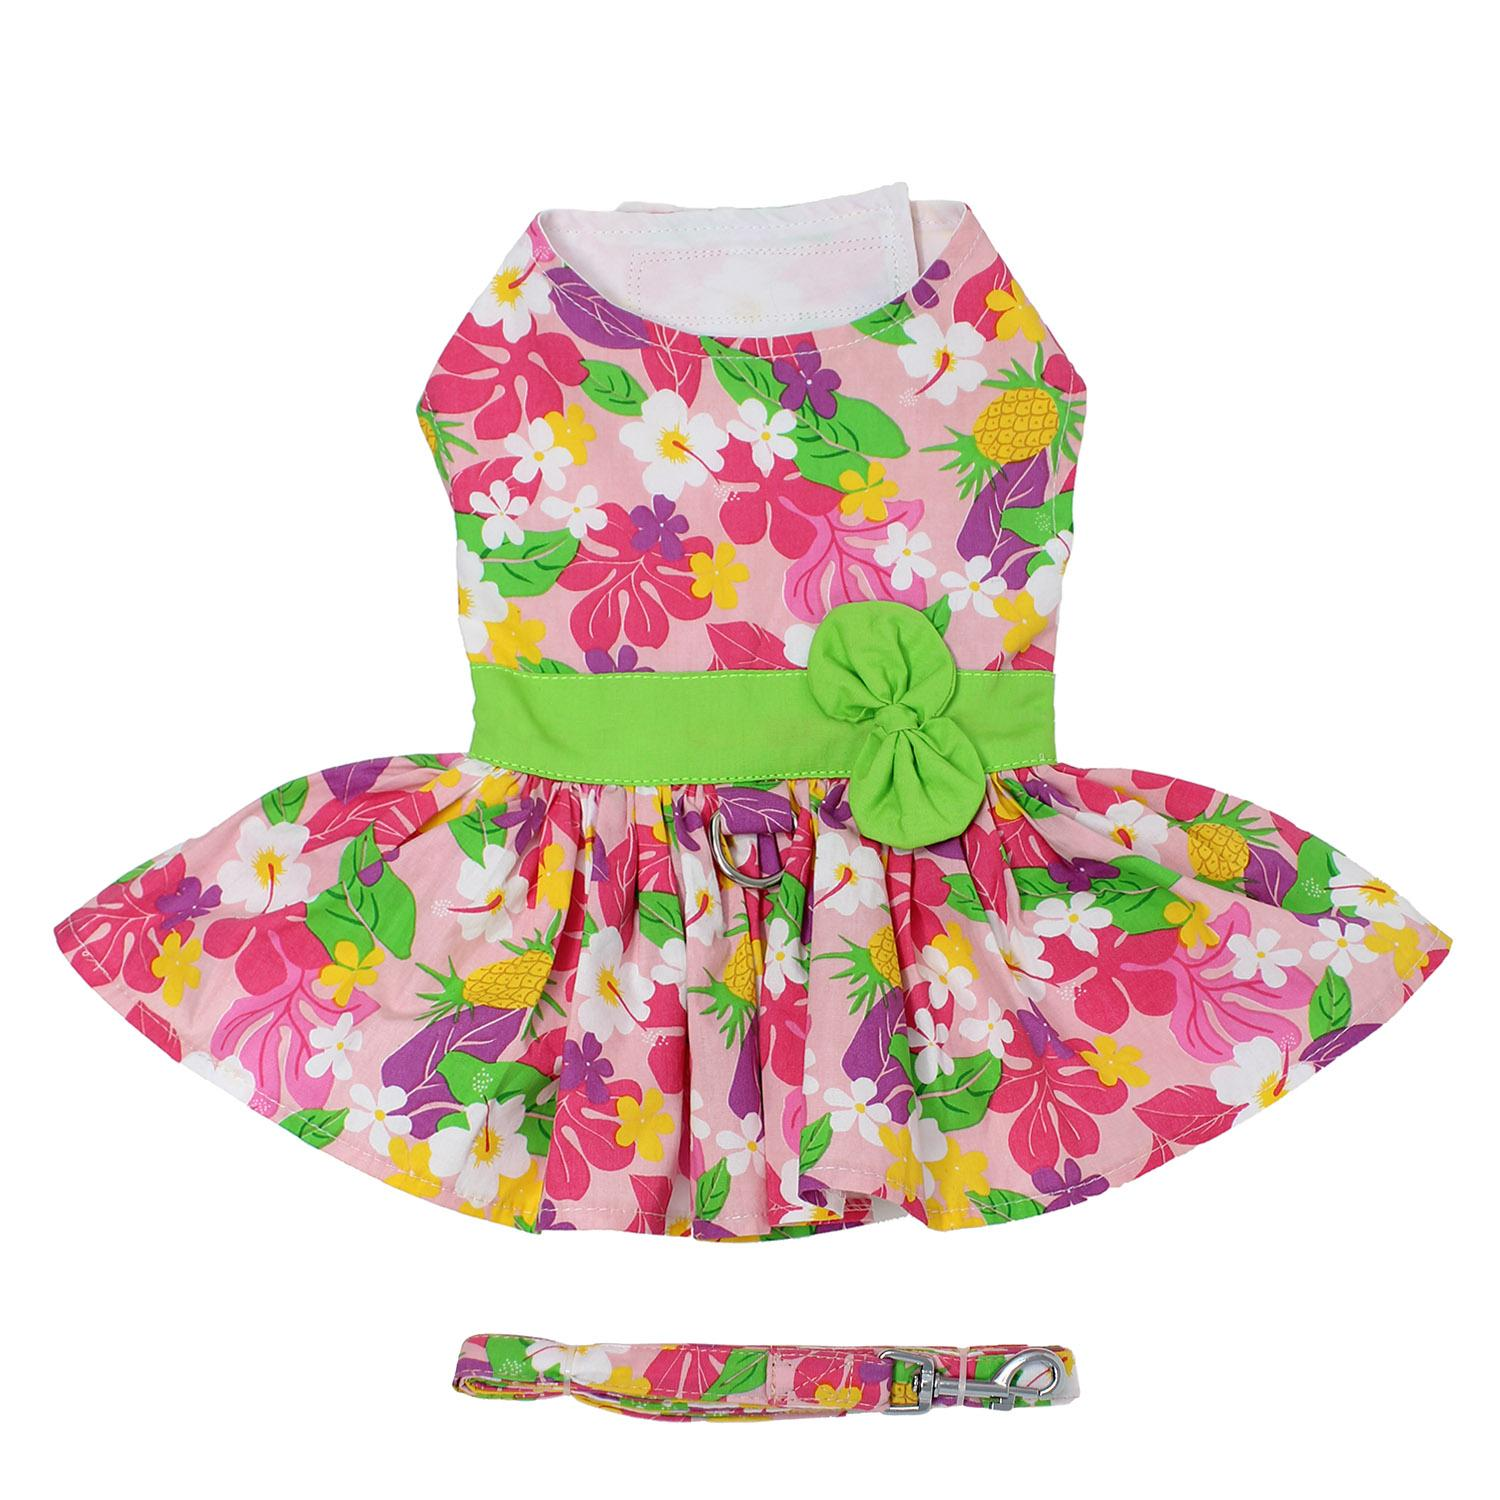 Doggie Design Dog Dress with Matching Leash, Pink Hawaiian Floral, Small